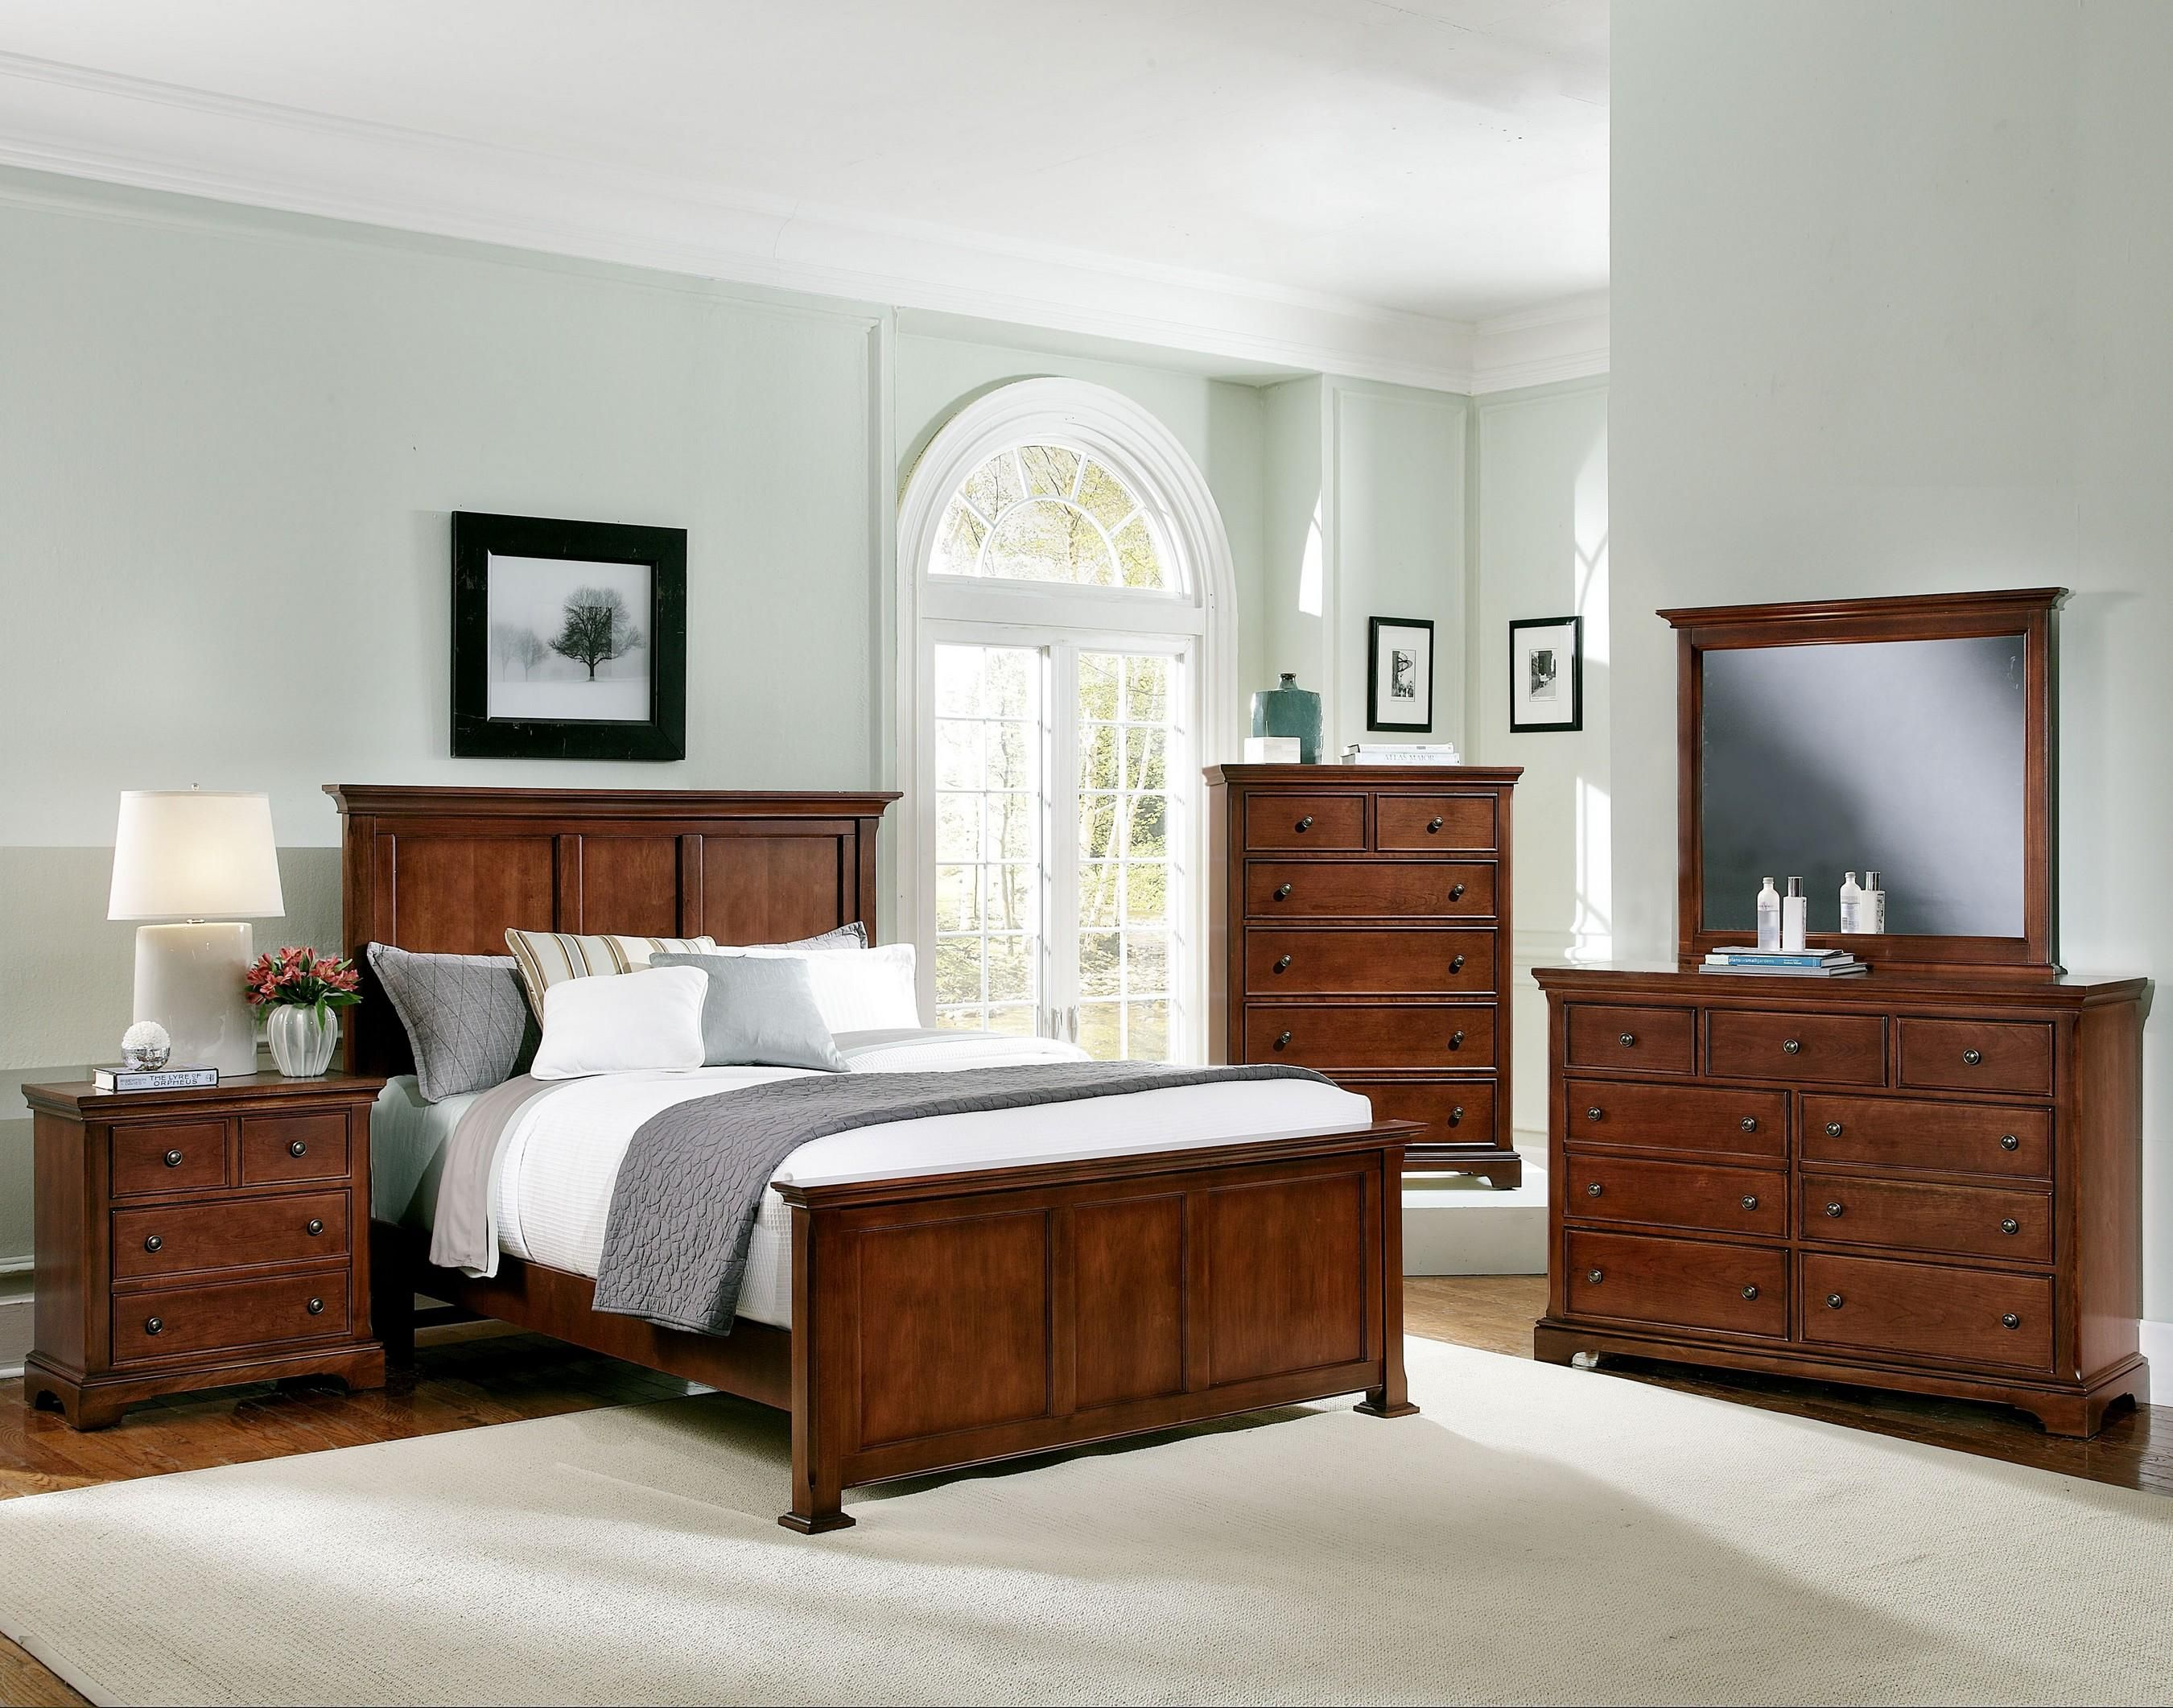 forsyth queen bedroom group by vaughan bassett at ahfa furniture i